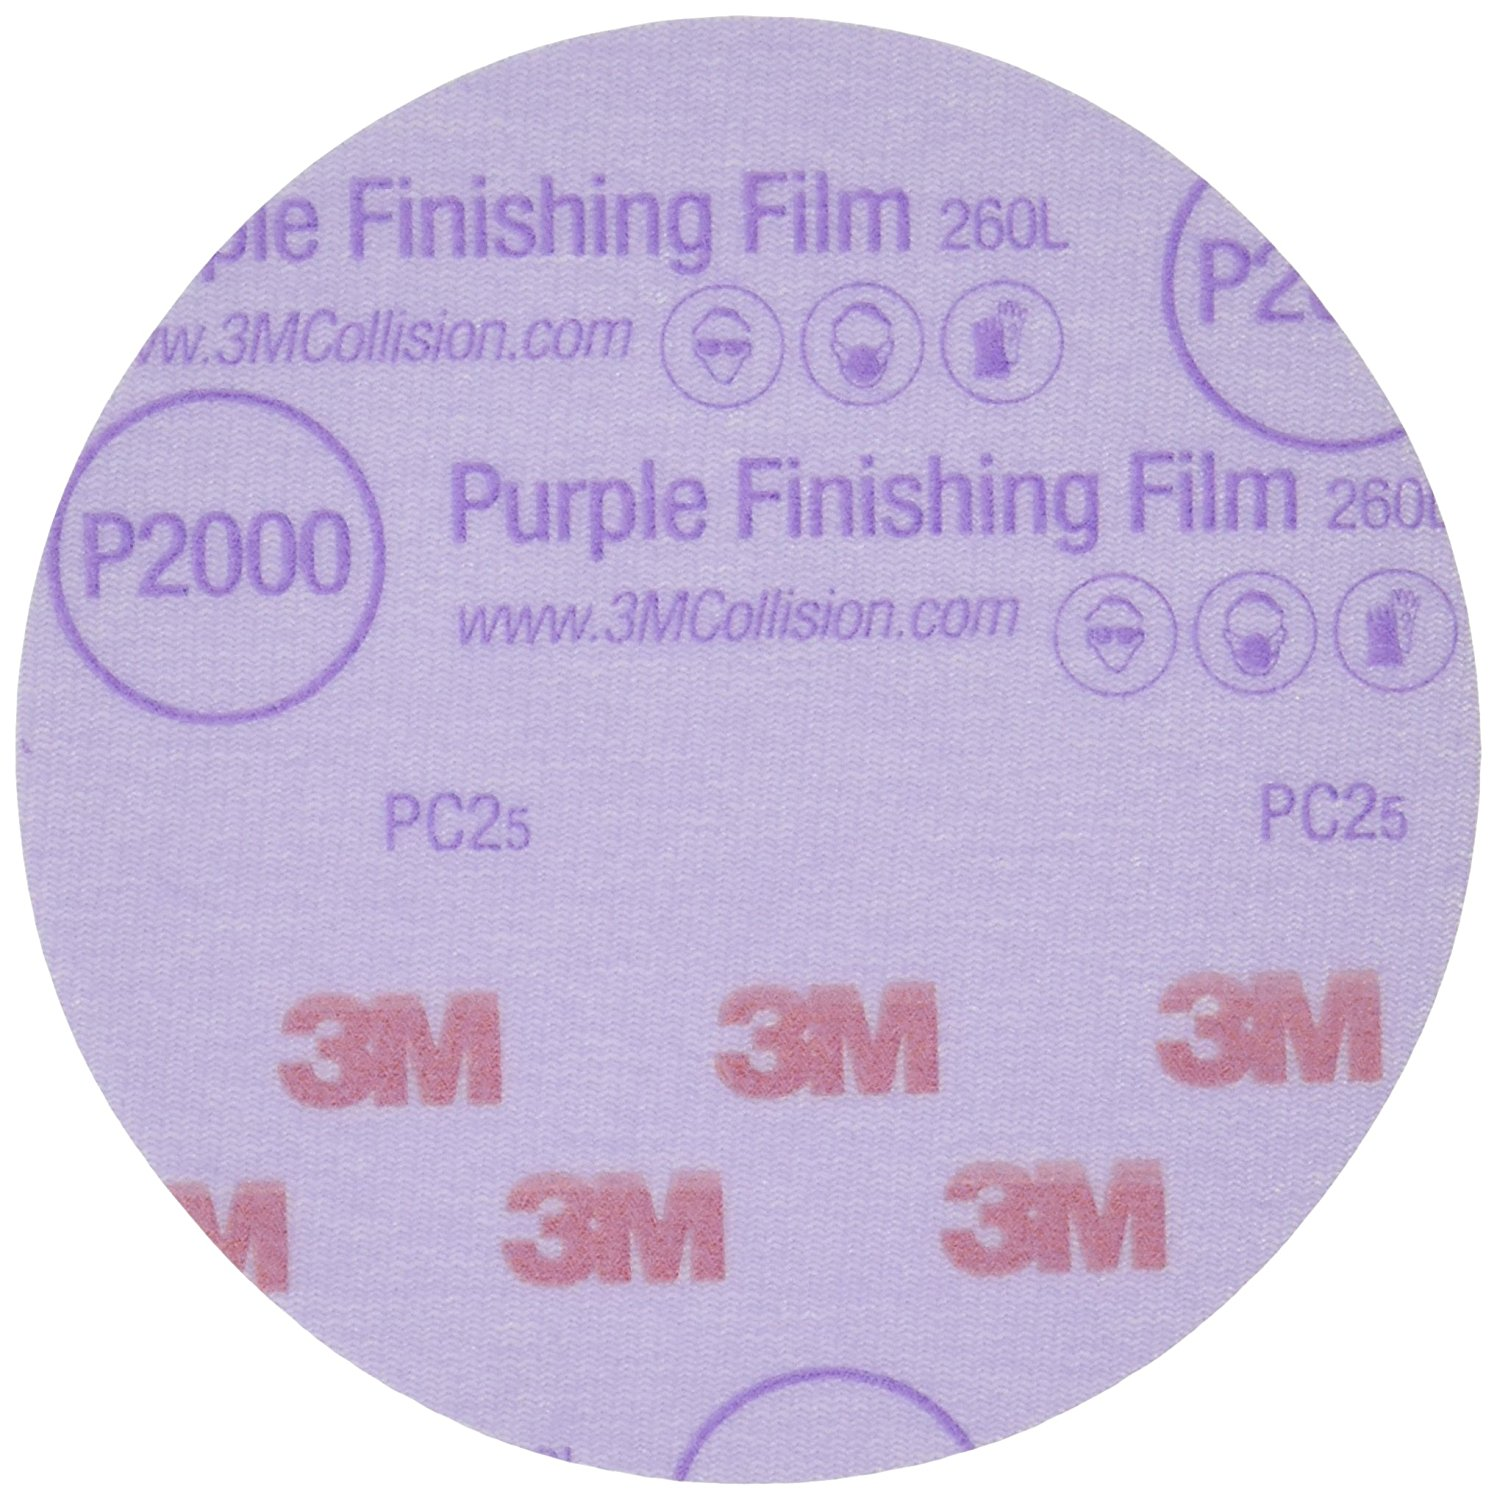 3M(TM) Purple Finishing Film Hookit(TM) Disc, 30566, 5 in, P2000, 50 discs per box [You are purchasing the Min order quantity which is 4 Box]